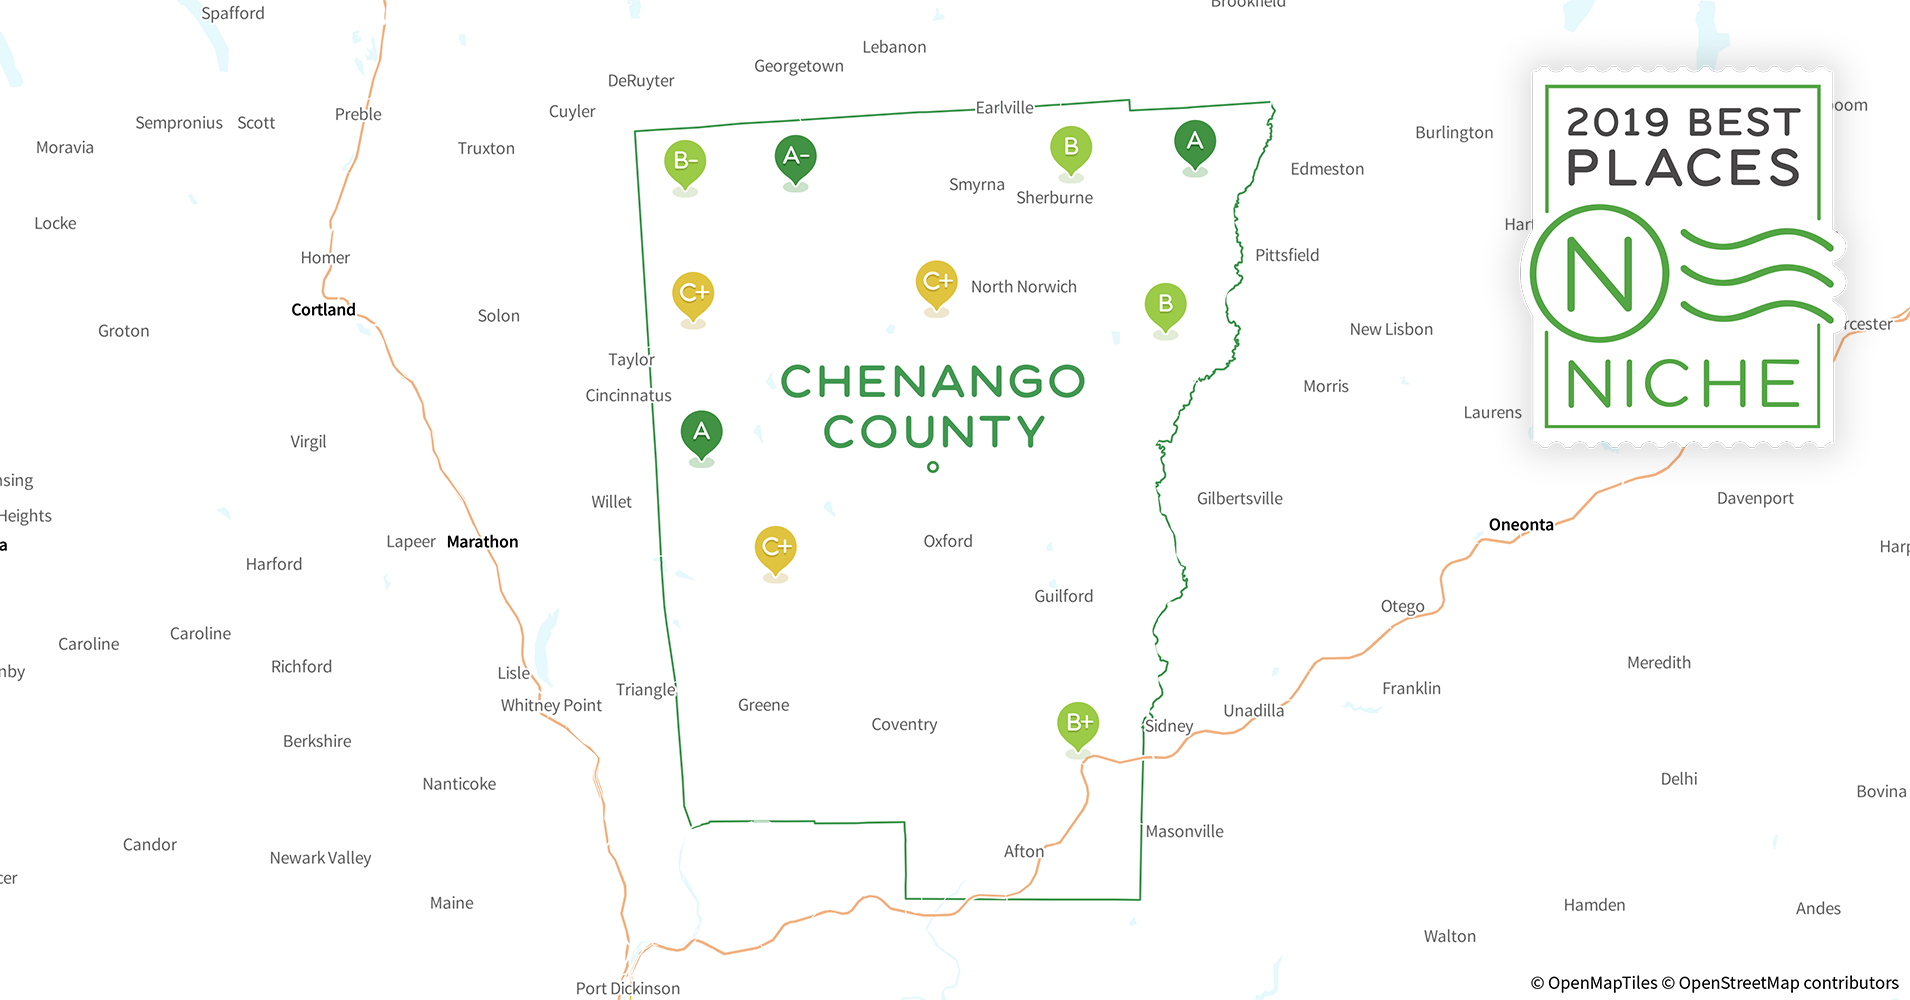 2019 Best Places to Buy a House in Chenango County, NY - Niche Chenango County Tax Maps on